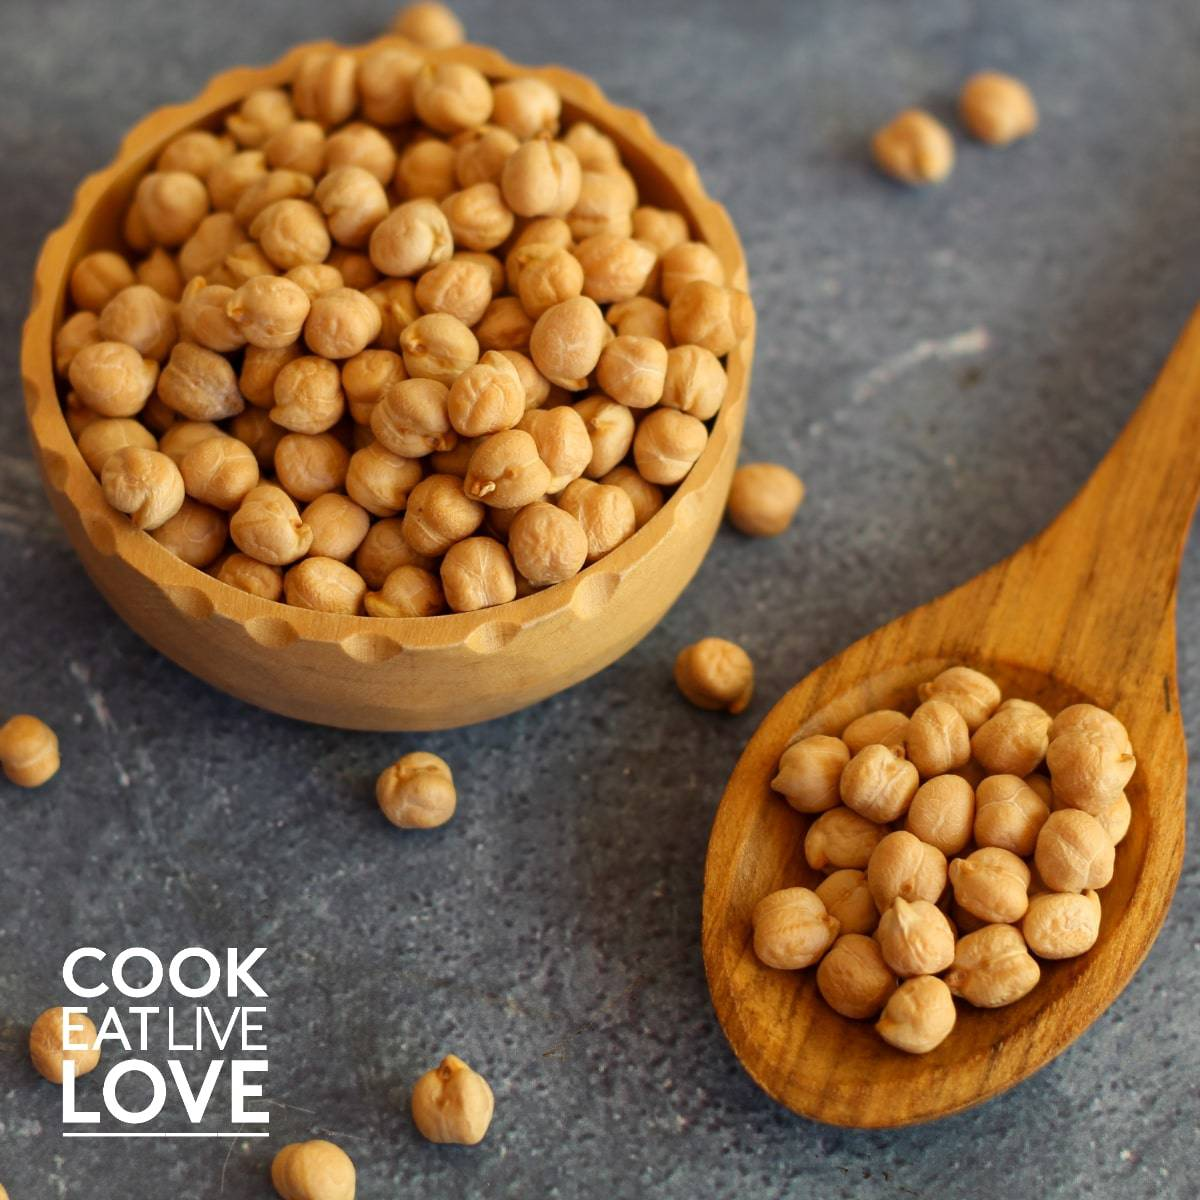 Chickpeas in a bowl on table with wooden spoon